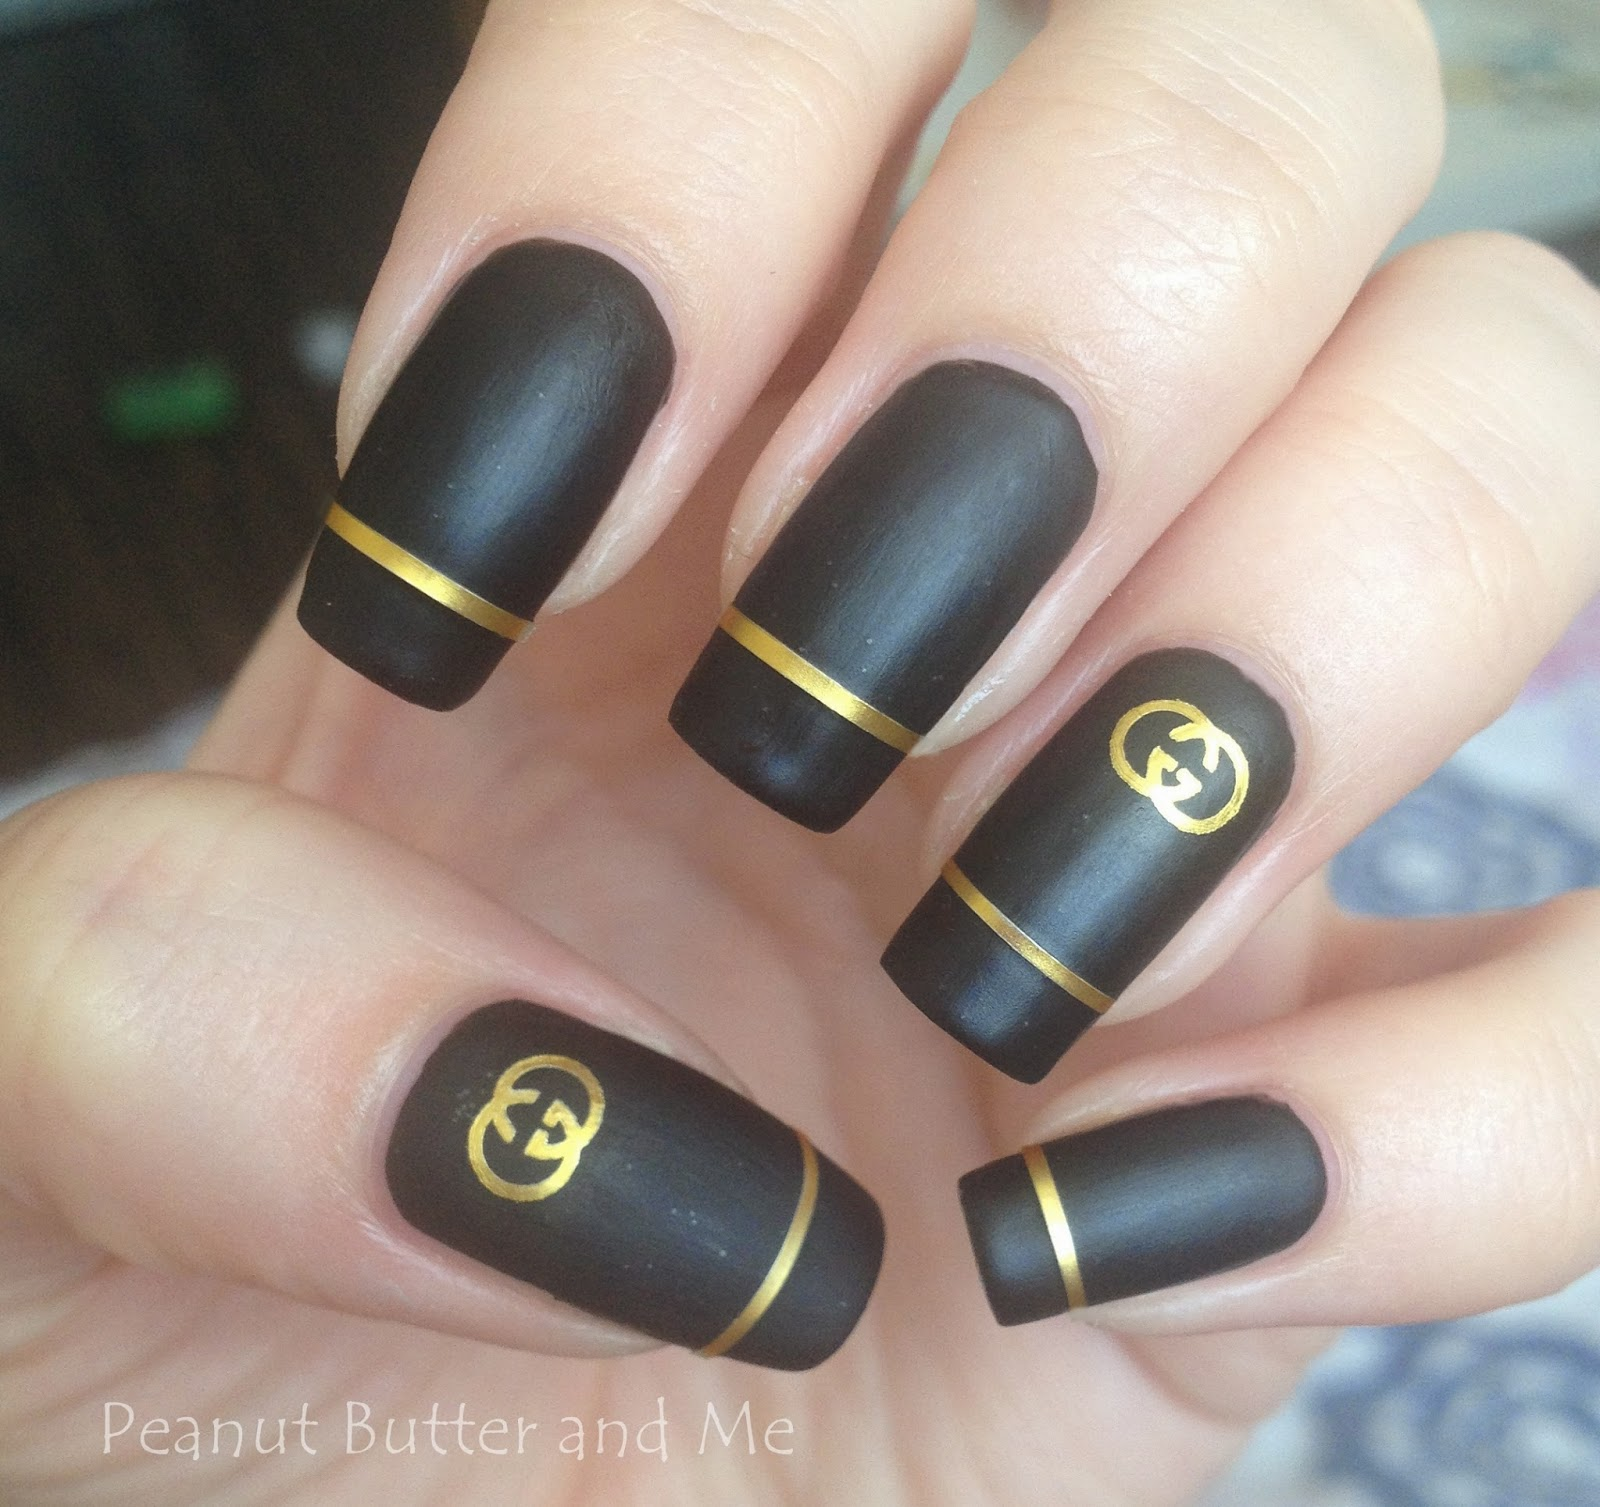 Gucci matte nails polish black gold